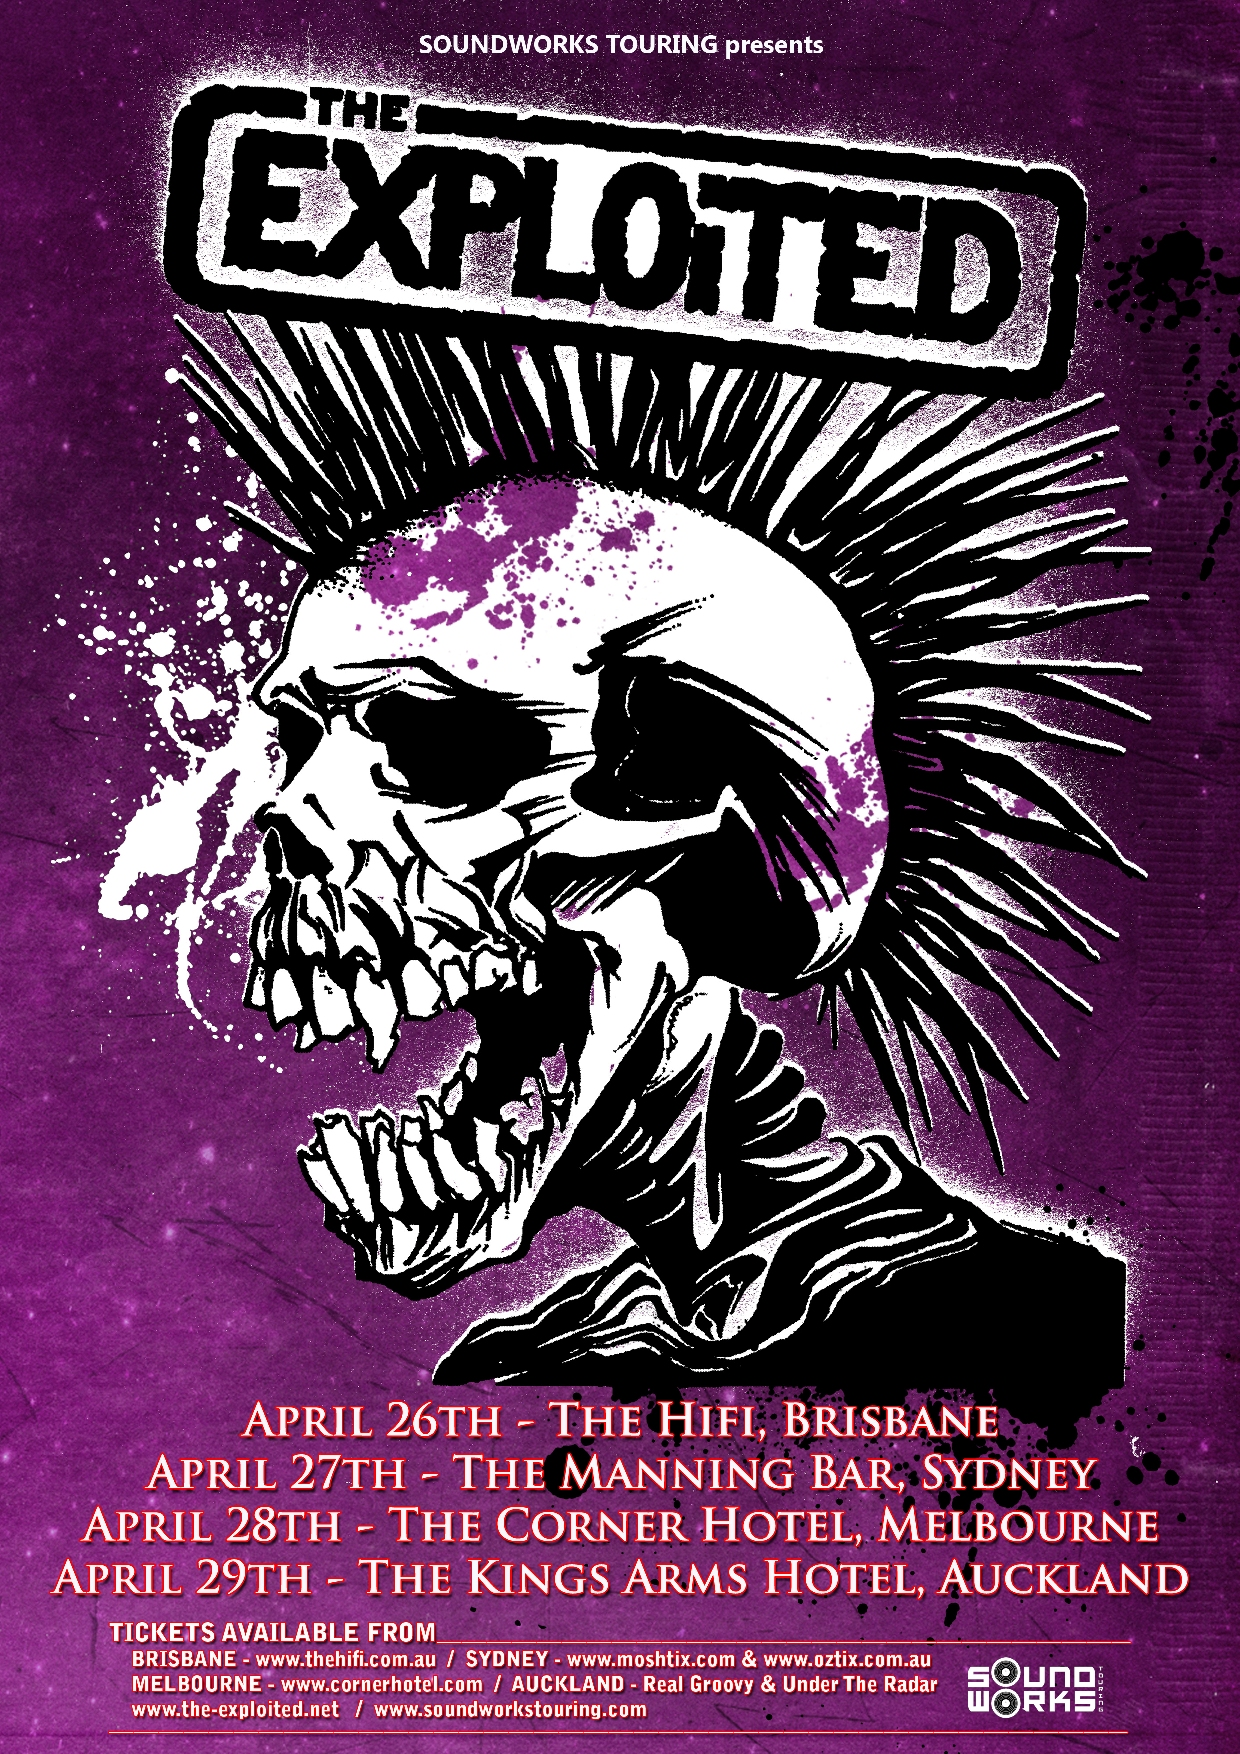 The Exploited announced Australian tour